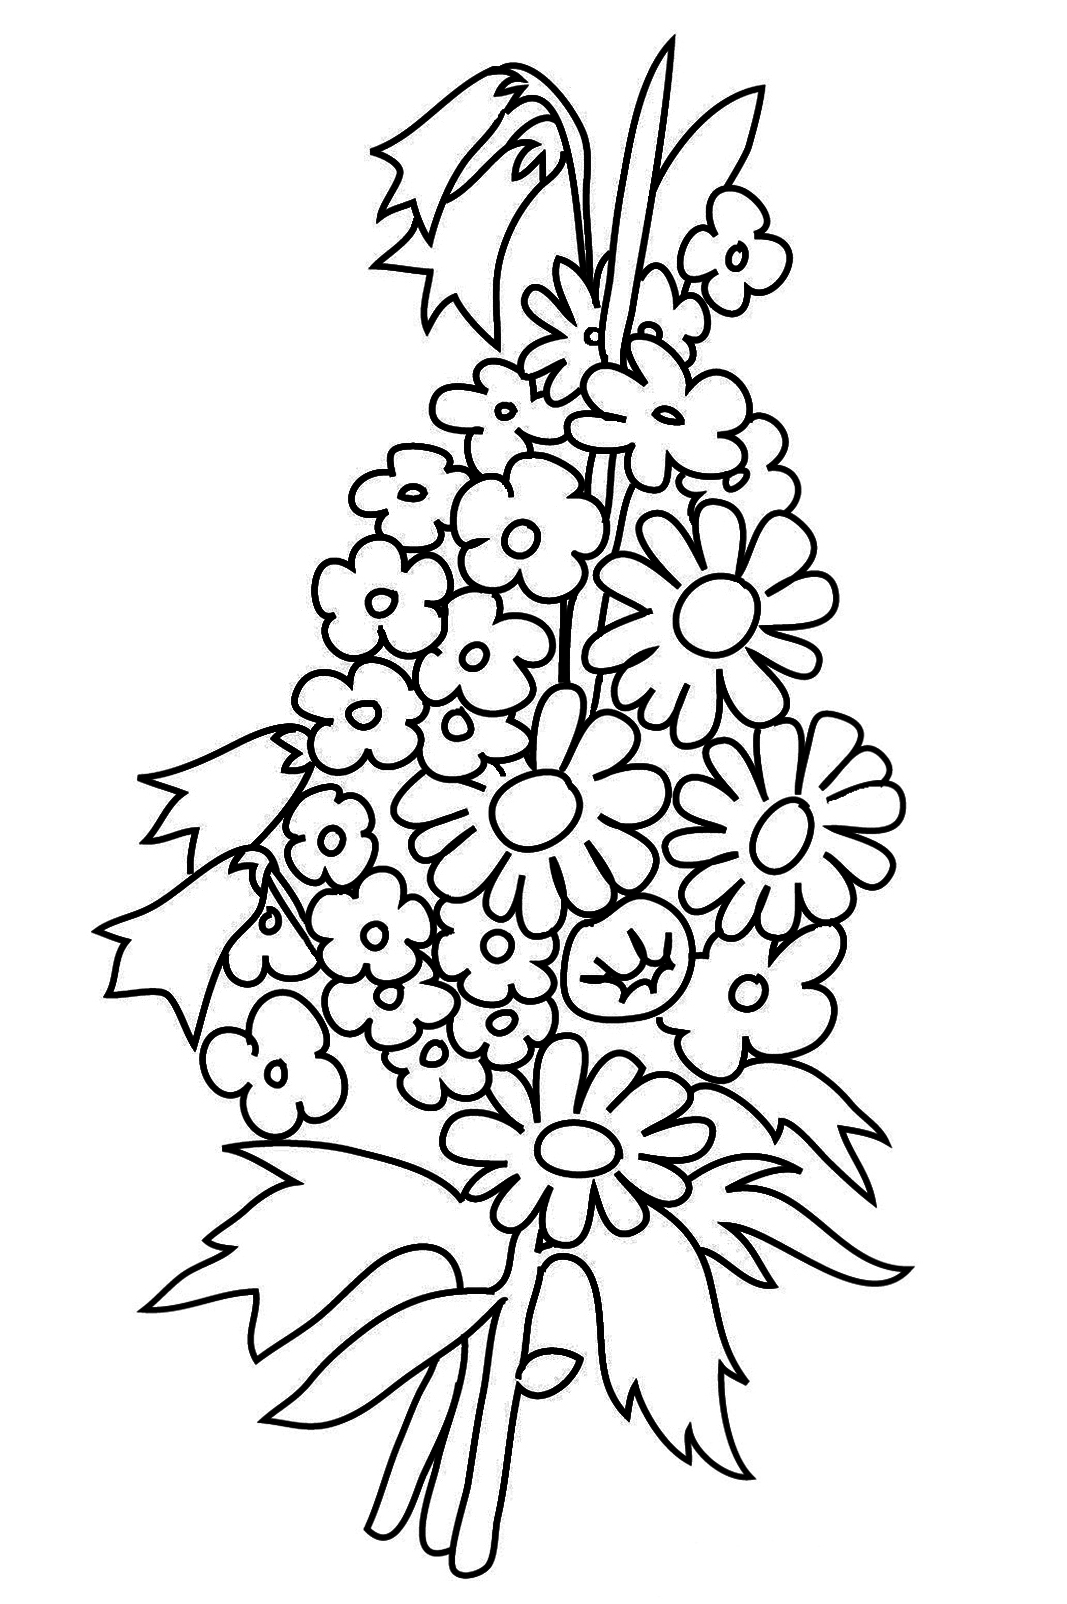 colouring page of flowers summer flowers printable coloring pages free large images colouring flowers page of